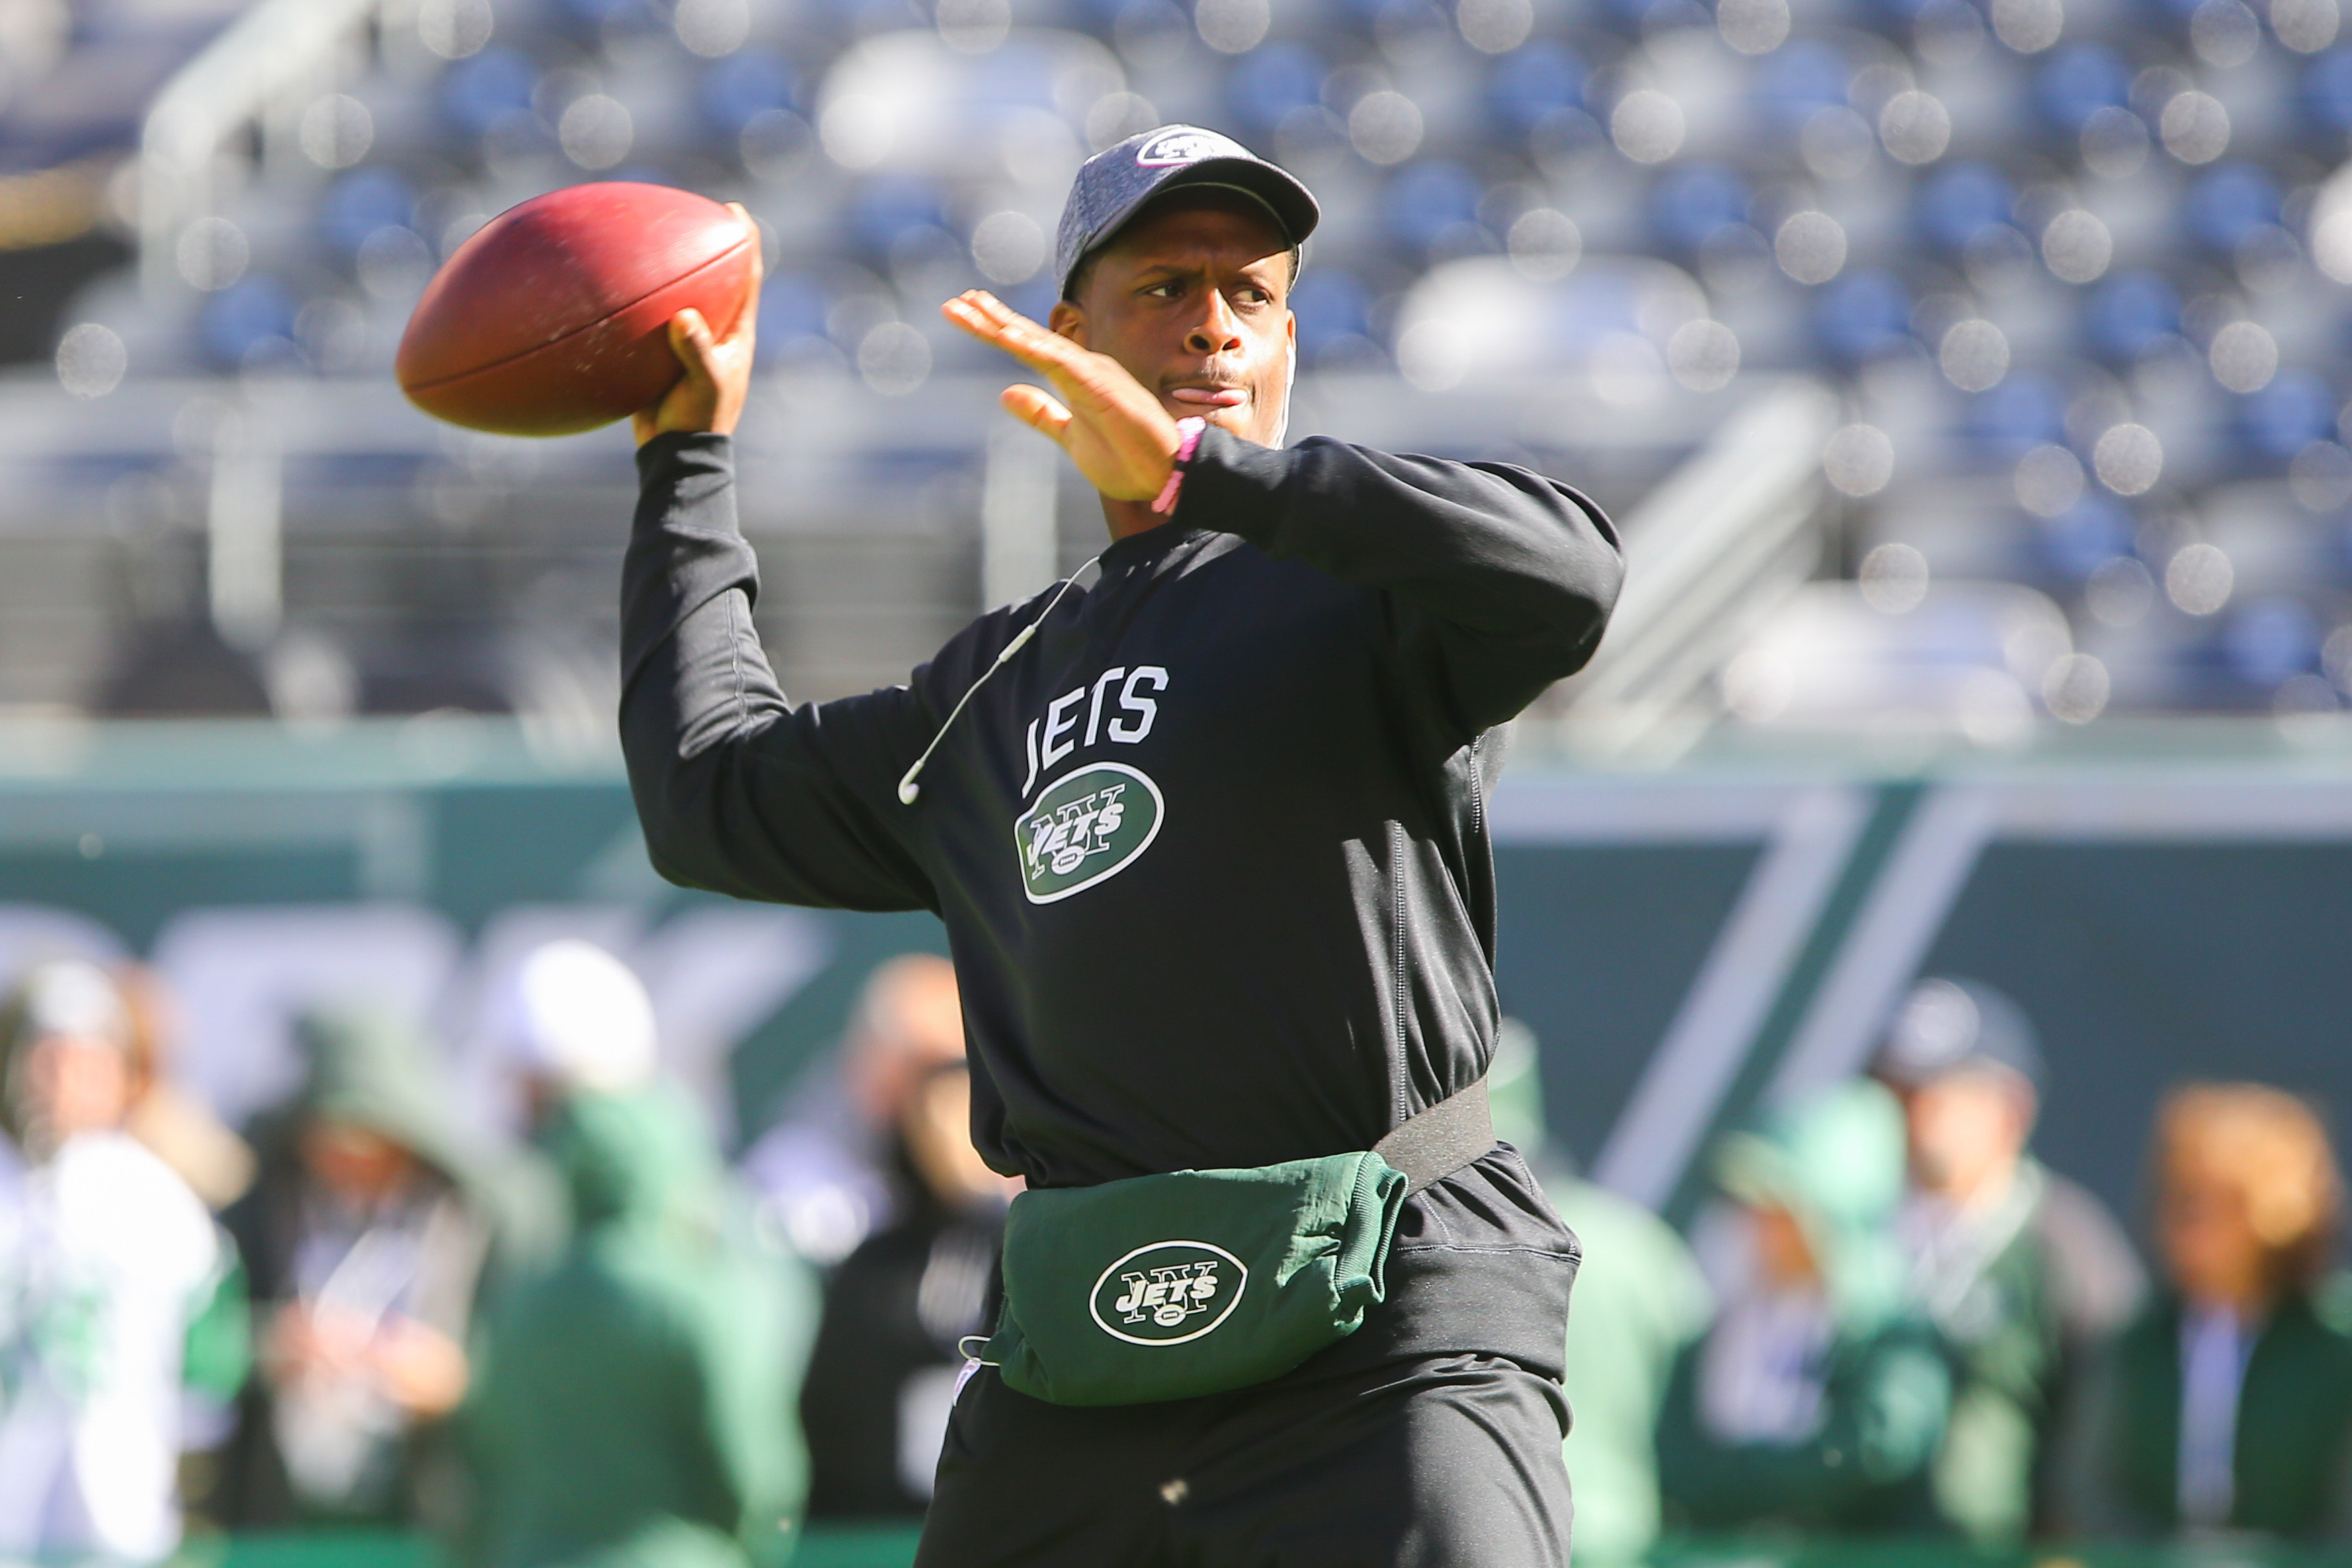 9627103-nfl-baltimore-ravens-at-new-york-jets